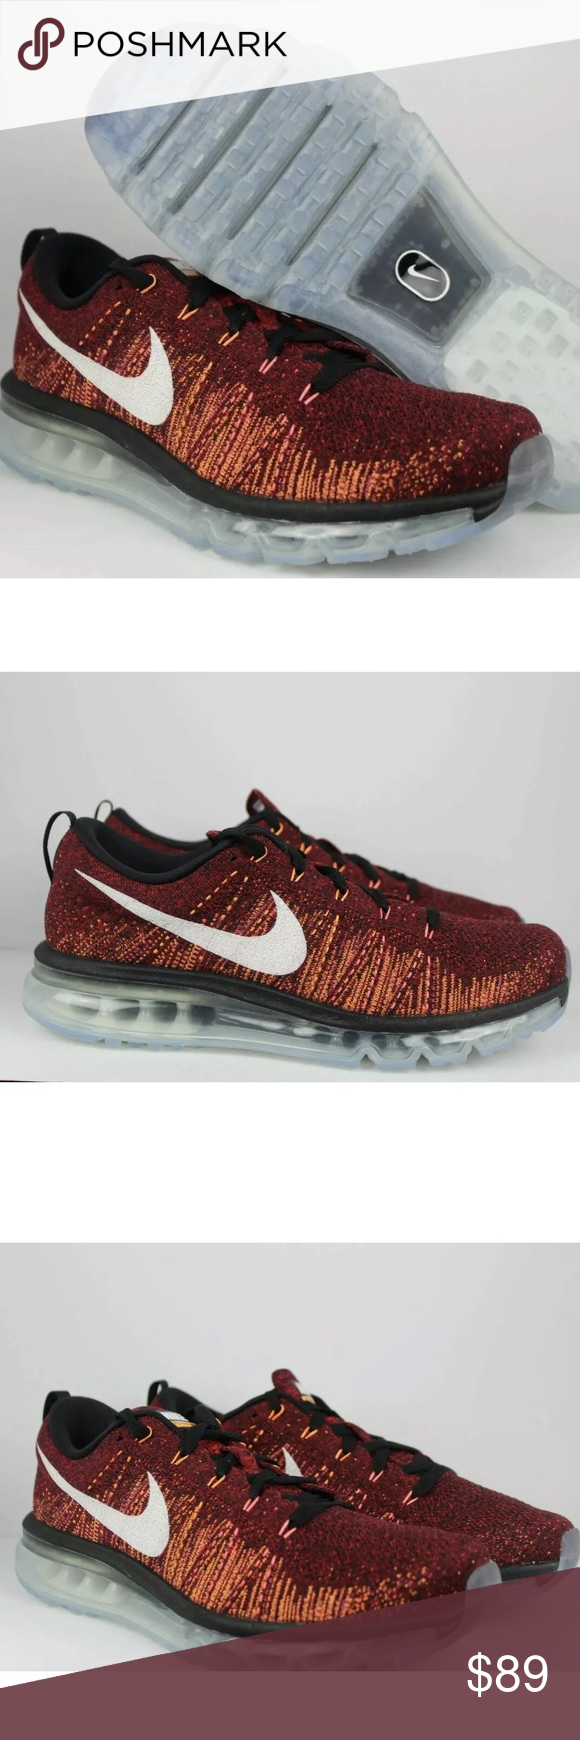 Nike Flyknit Air Max Red Men's Running Sneakers NWT. No box